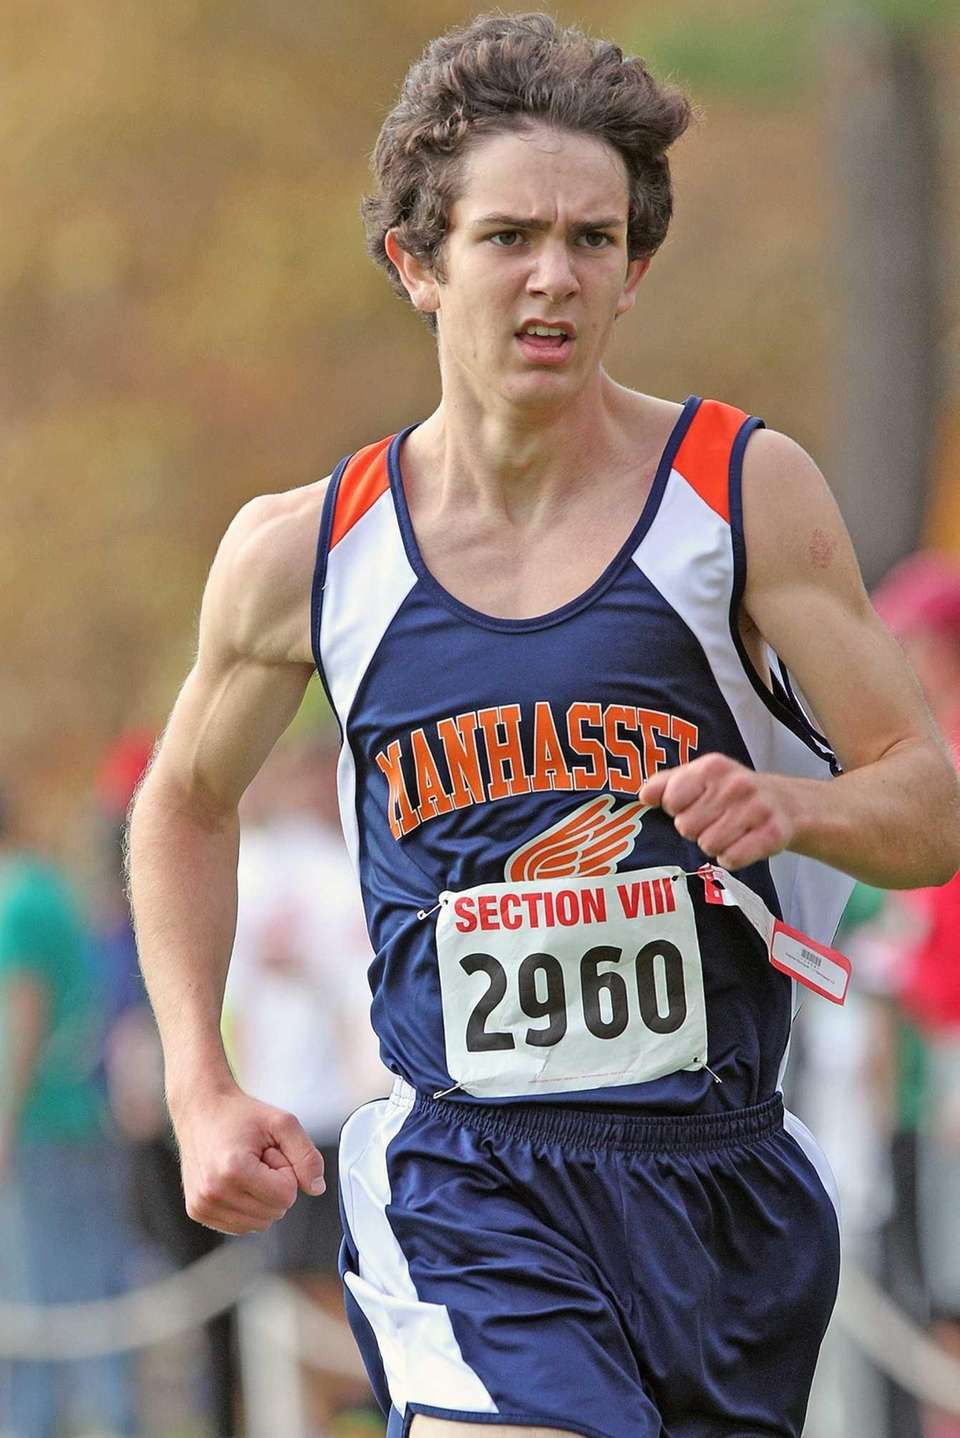 Manhasset's Stephen Bourguet wins the boys Nassau III